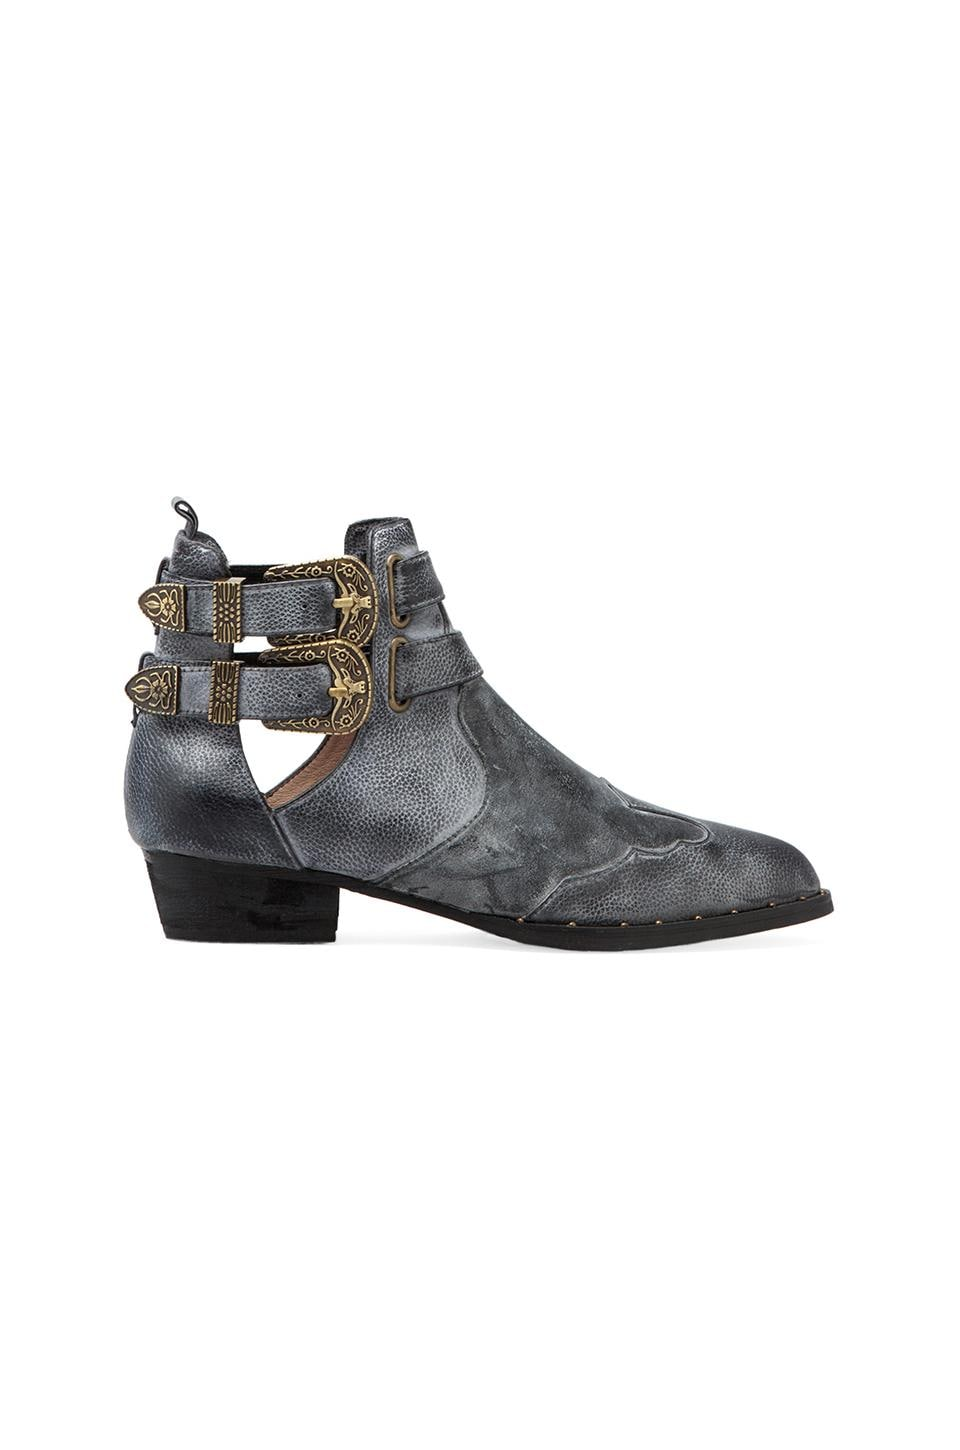 SENSO Bryony Boot in Tar